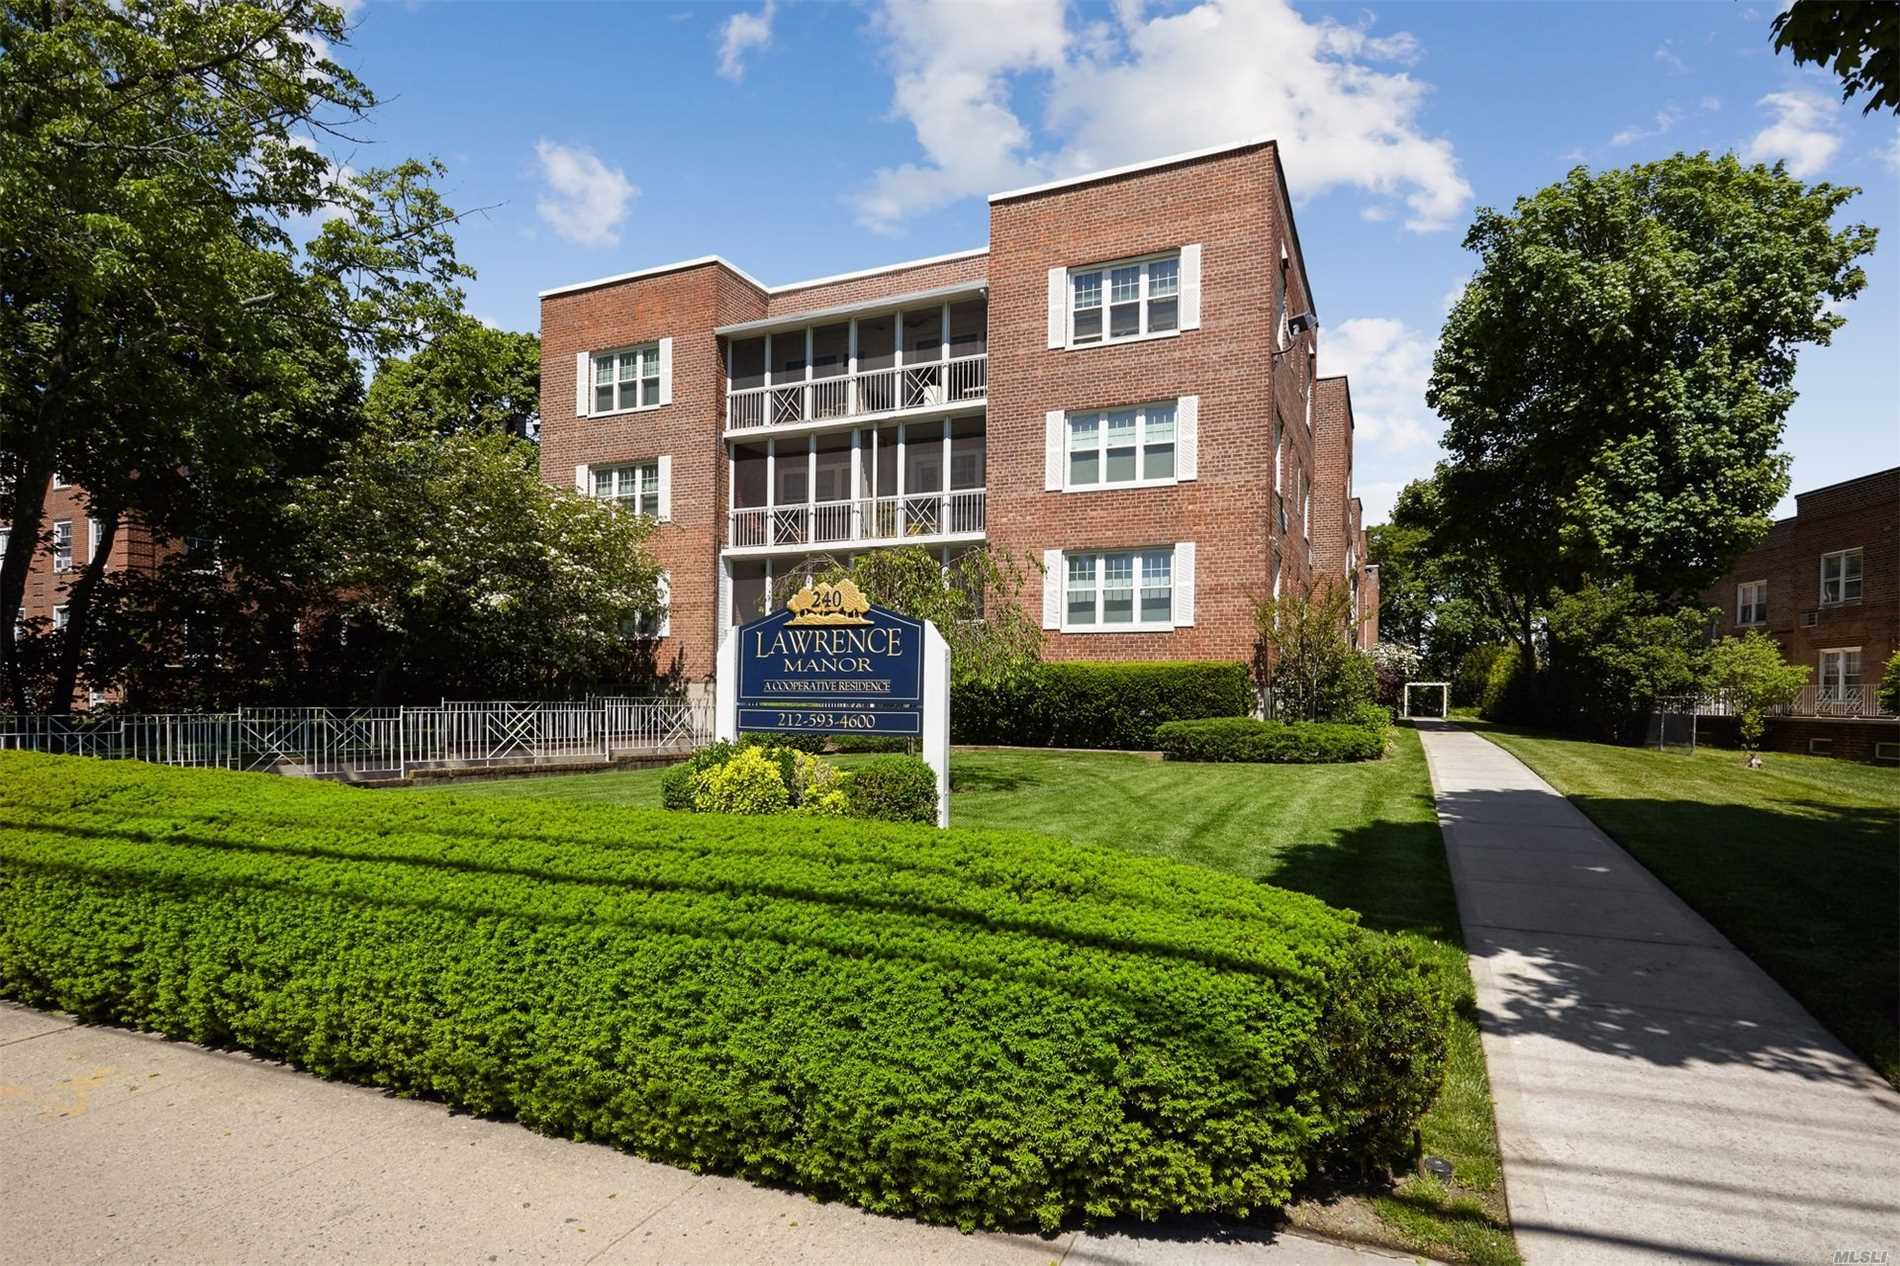 New To Market! Lovely Co-Op, Heart Of Lawrence. Spacious Living Room, Dining Room, Efficiency Kitchen. Large Bedroom With Many Closets! Custom Entry Hall And Alcove. Close To Shopping, Houses Of Worship, LIRR.